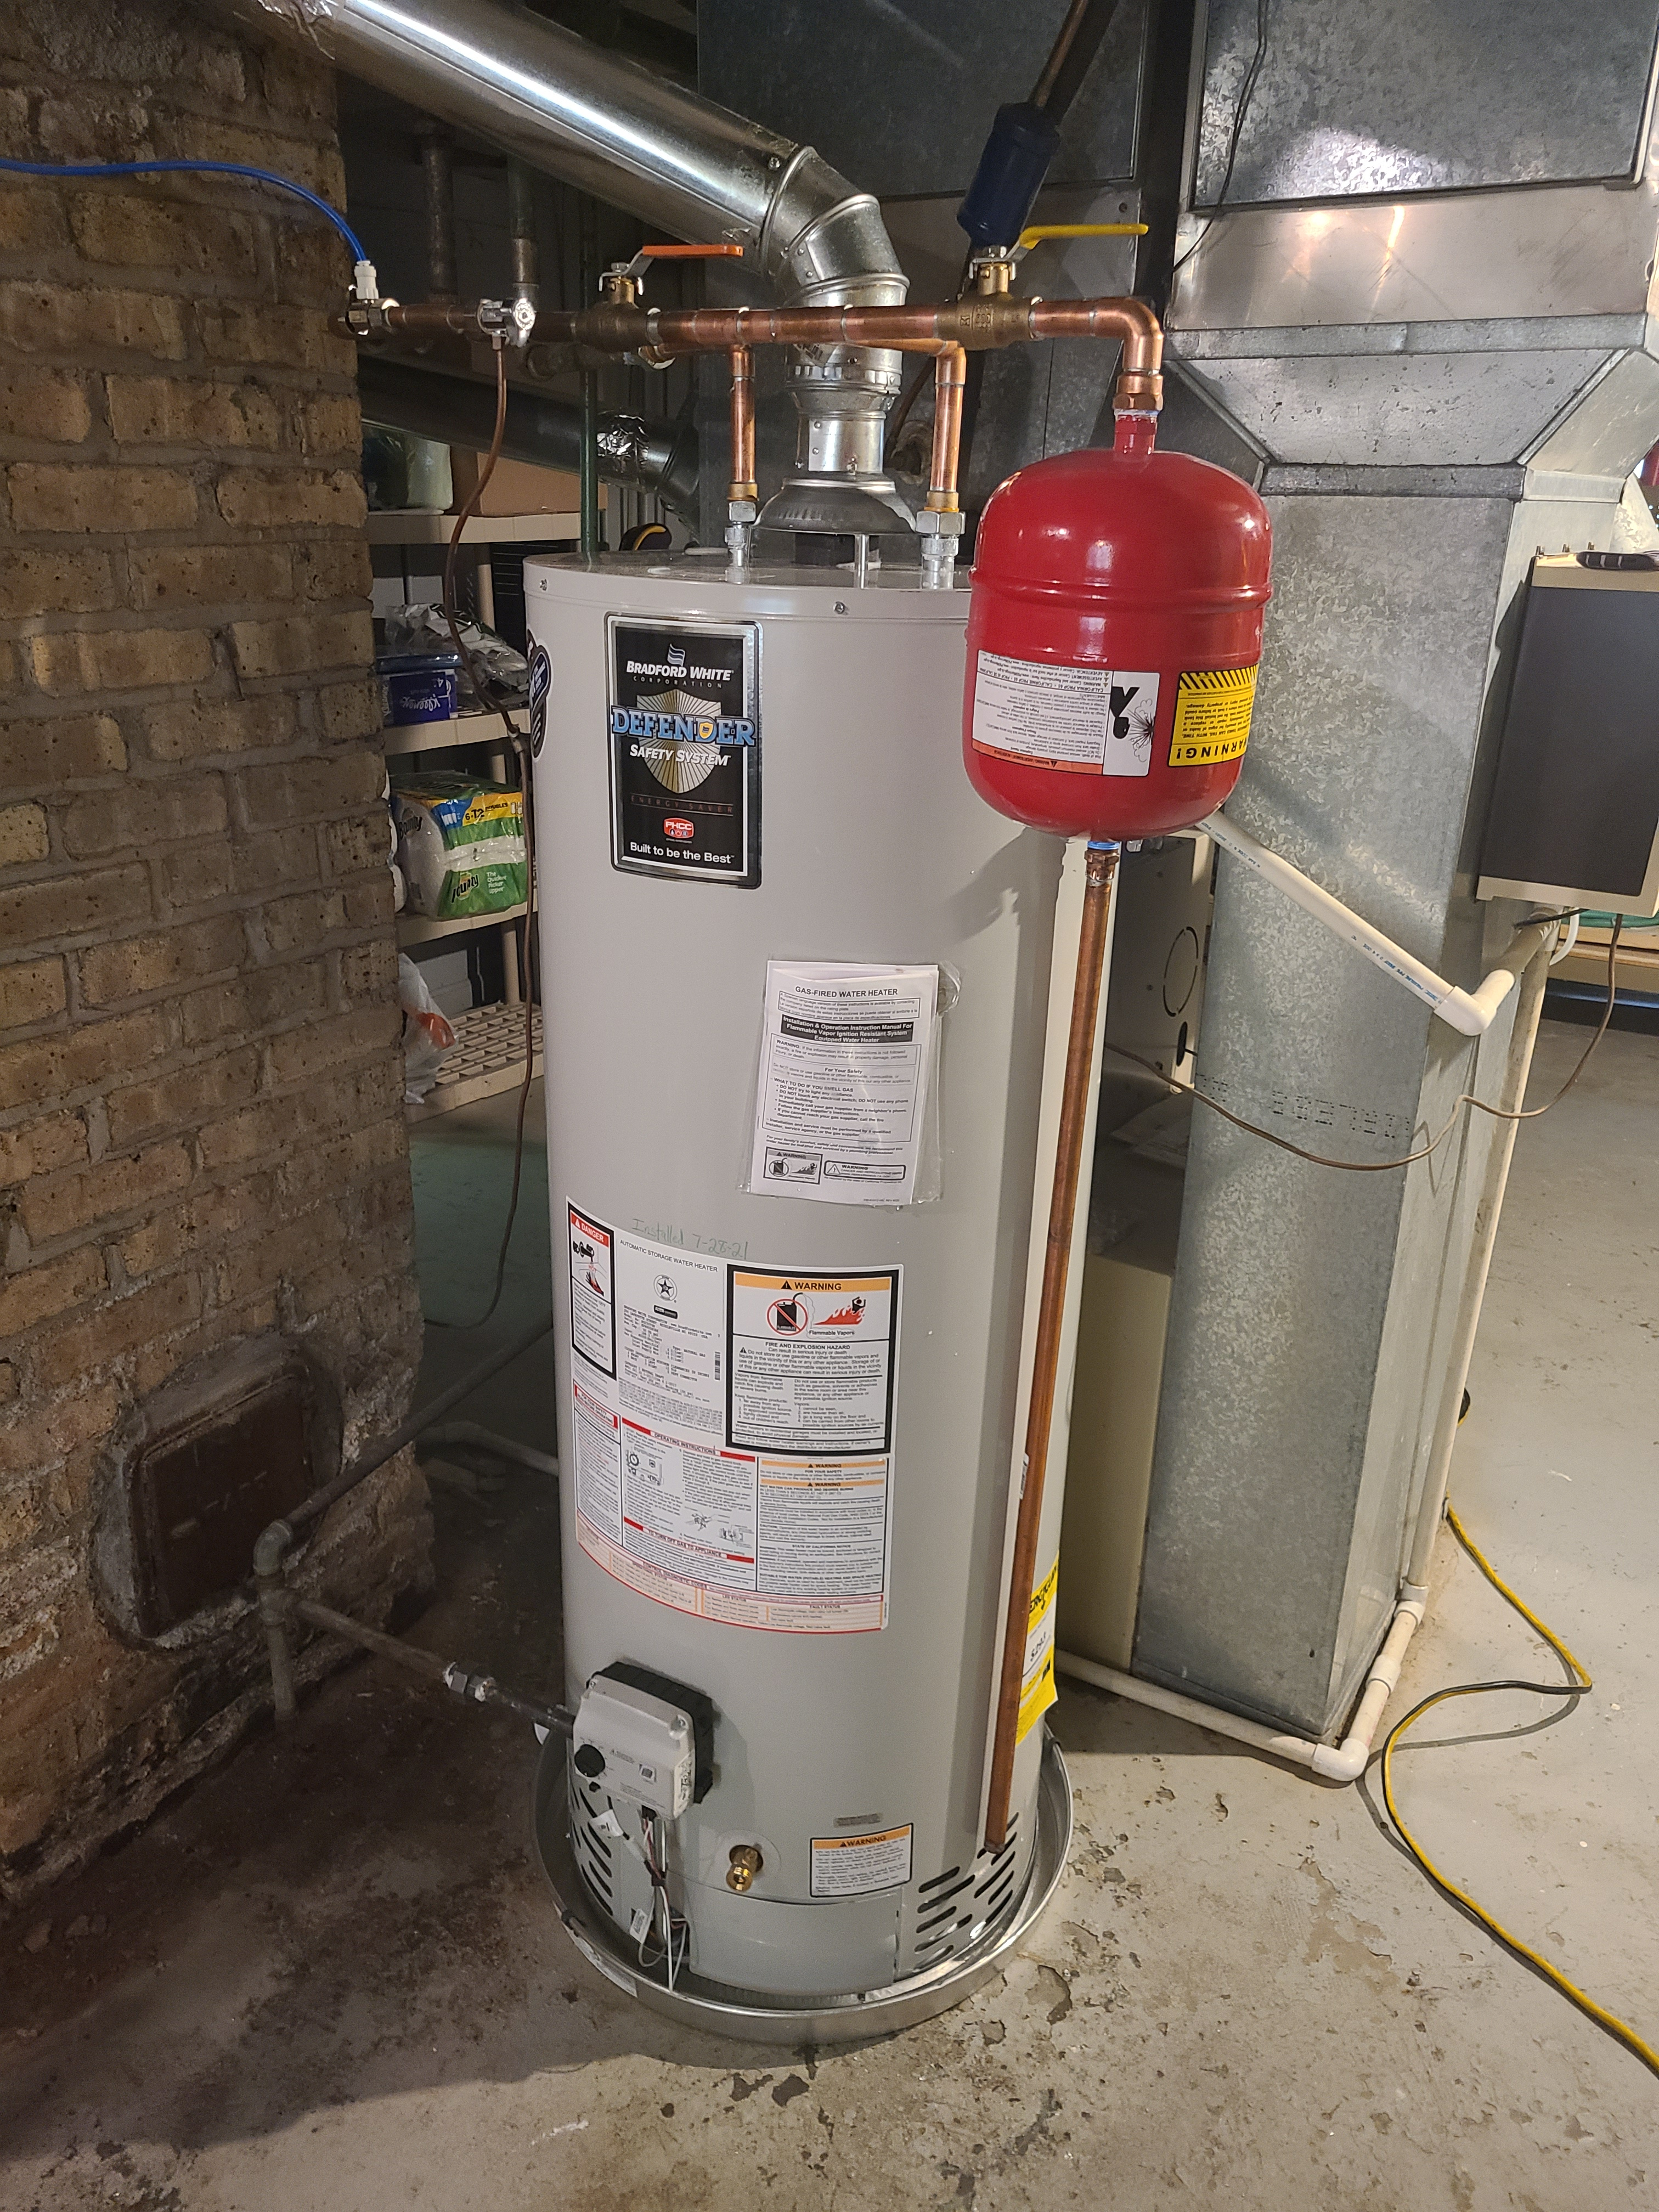 New water heater with expansion tank installed